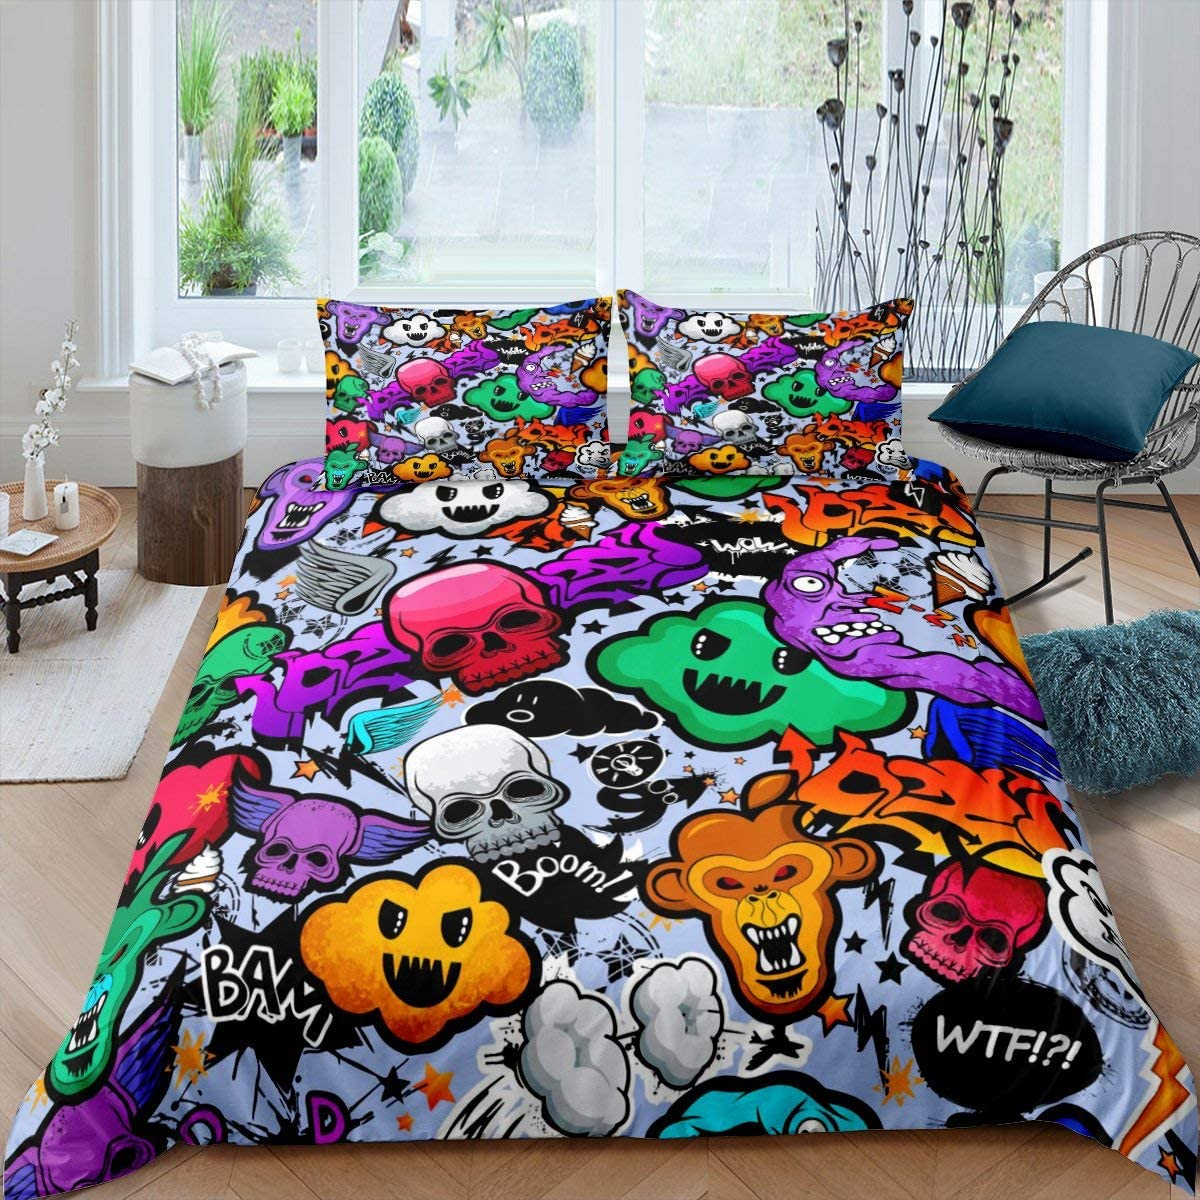 Hip-Hop Bedding Set Queen Size for Teens Boys Gothic Skull Decor Comforter Cover Graffiti Hippie Style Duvet Cover Happy Halloween Theme Ghost Pattern Skeleton Bedspread Trick and Treat Quilt Set